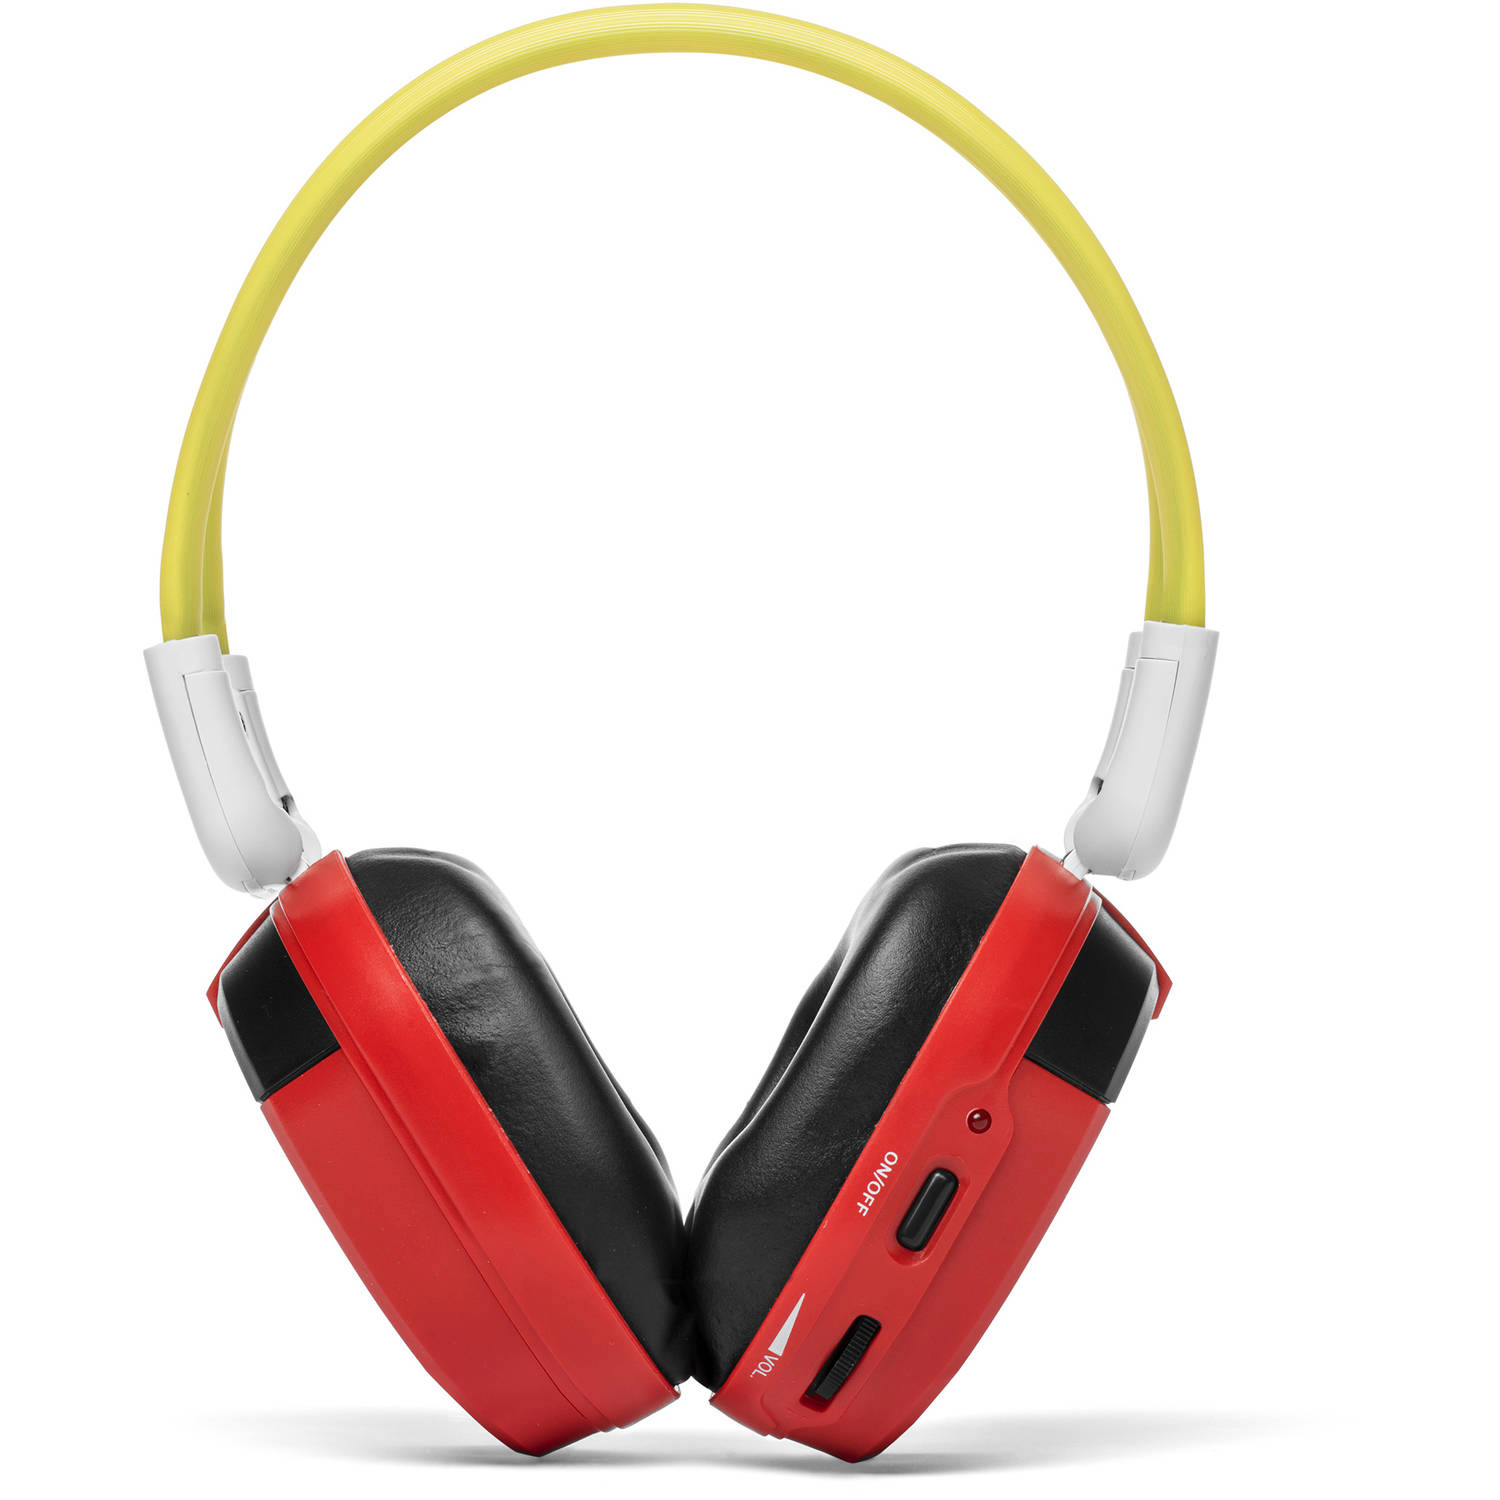 Bravo View IH-06A - KID FRIENDLY Automotive IR Wireless Headphones (Red)